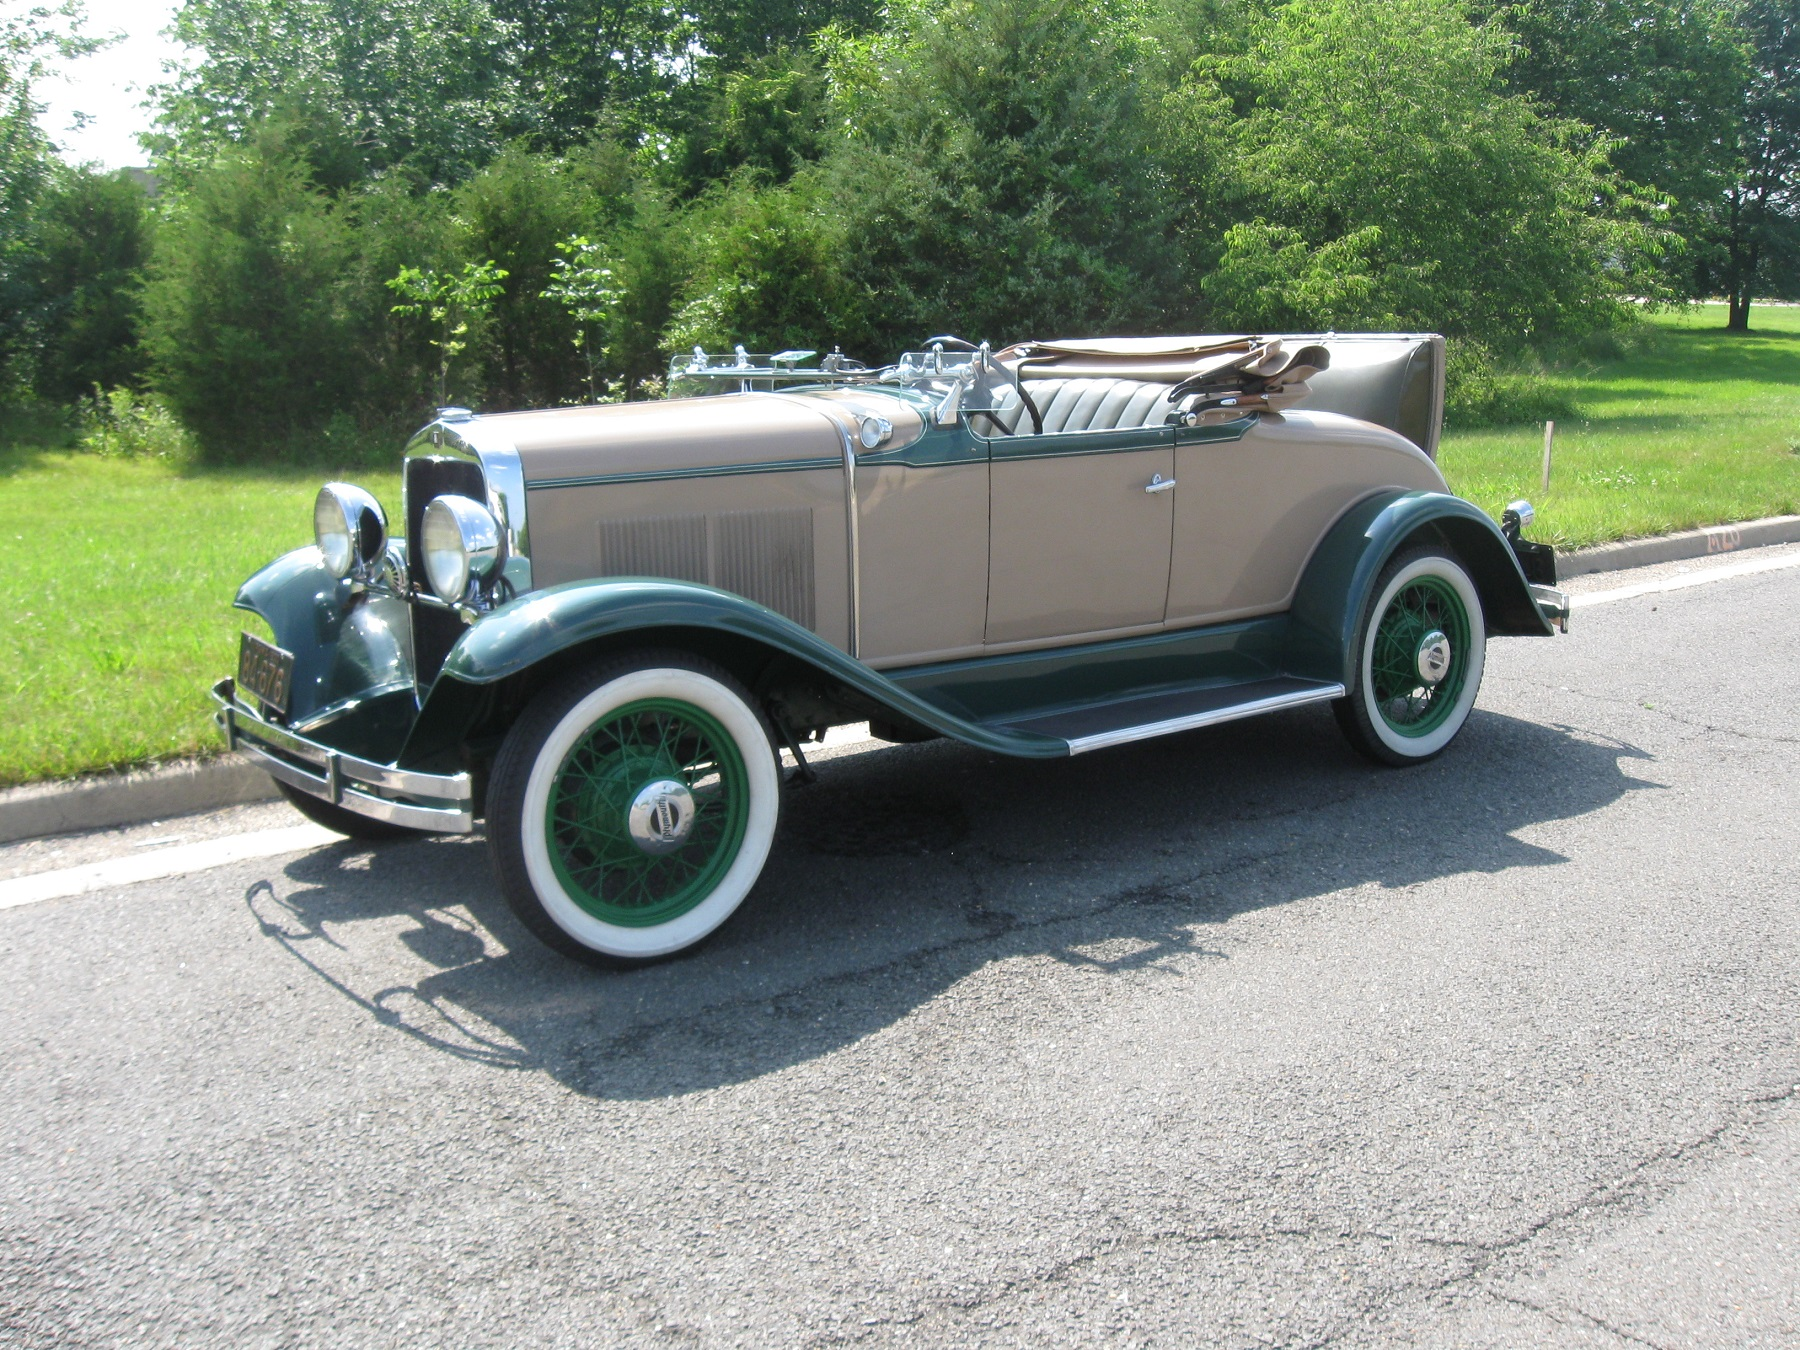 the new plymouth was a sales success and by 1930, despite the great  depression, plymouth sales were soaring  a 2,280-pound two-door sport  roadster,